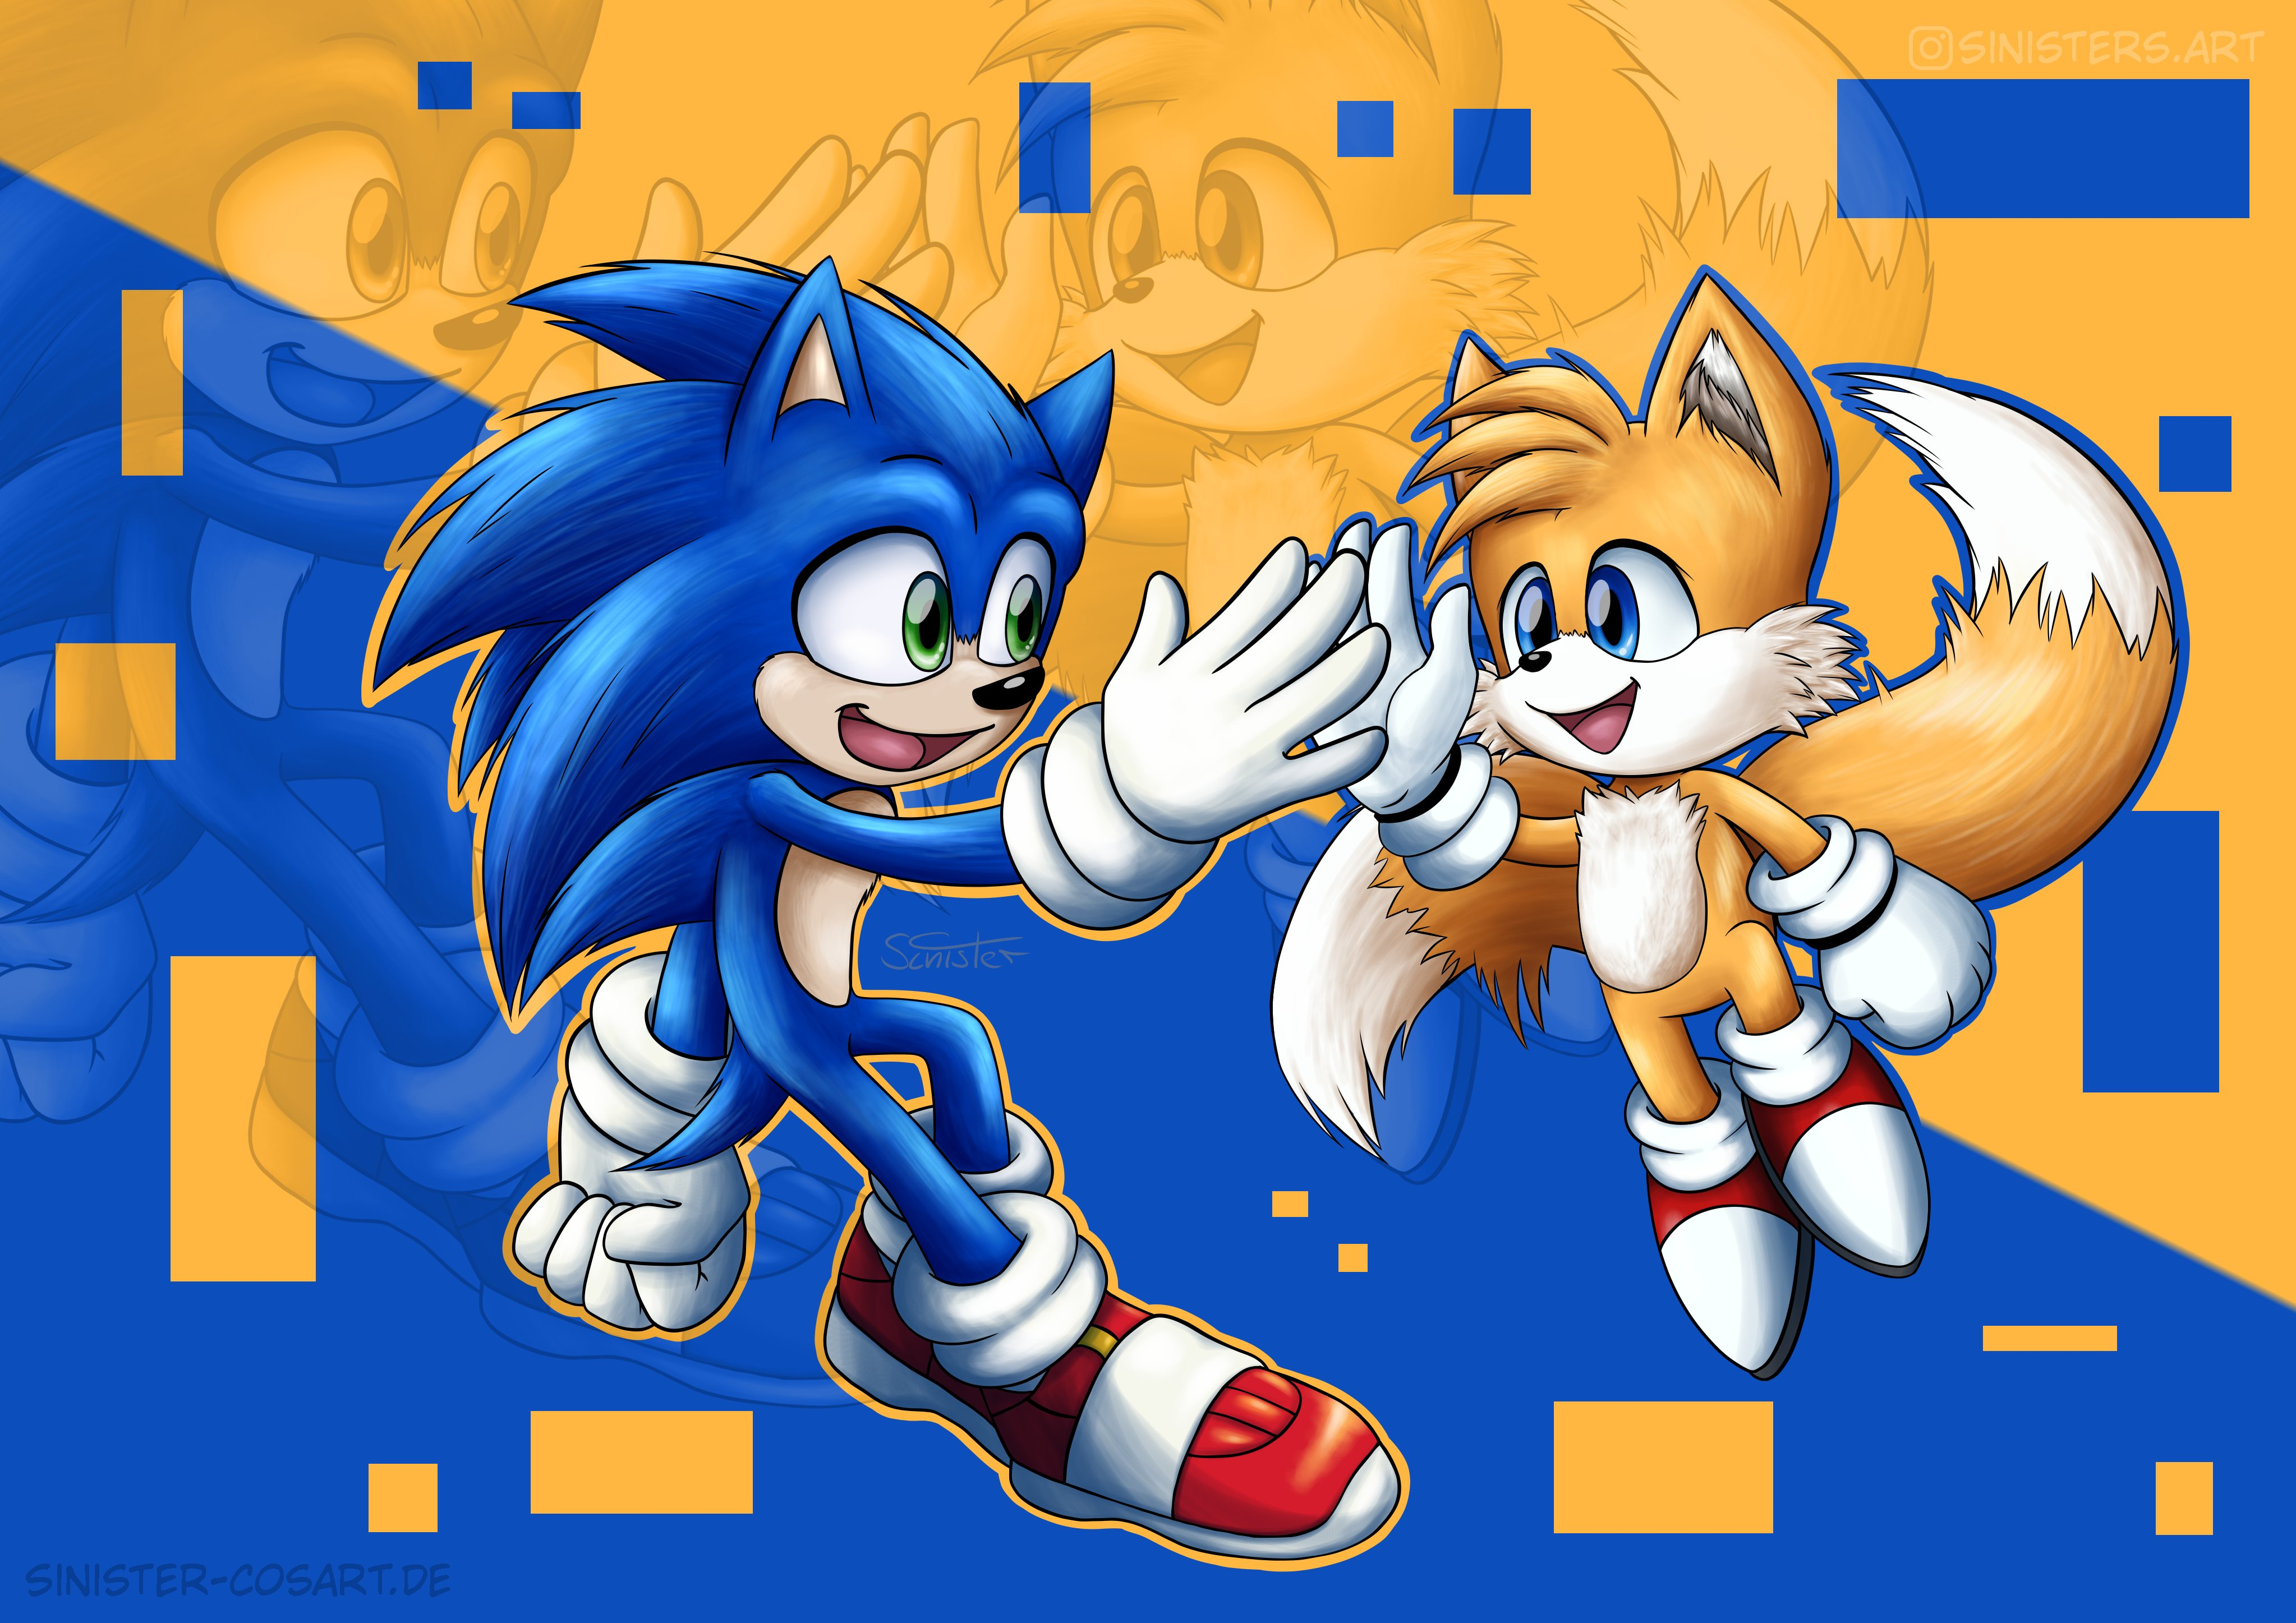 Sonic And Tails Sonic The Hedgehog 2020 Film Know Your Meme